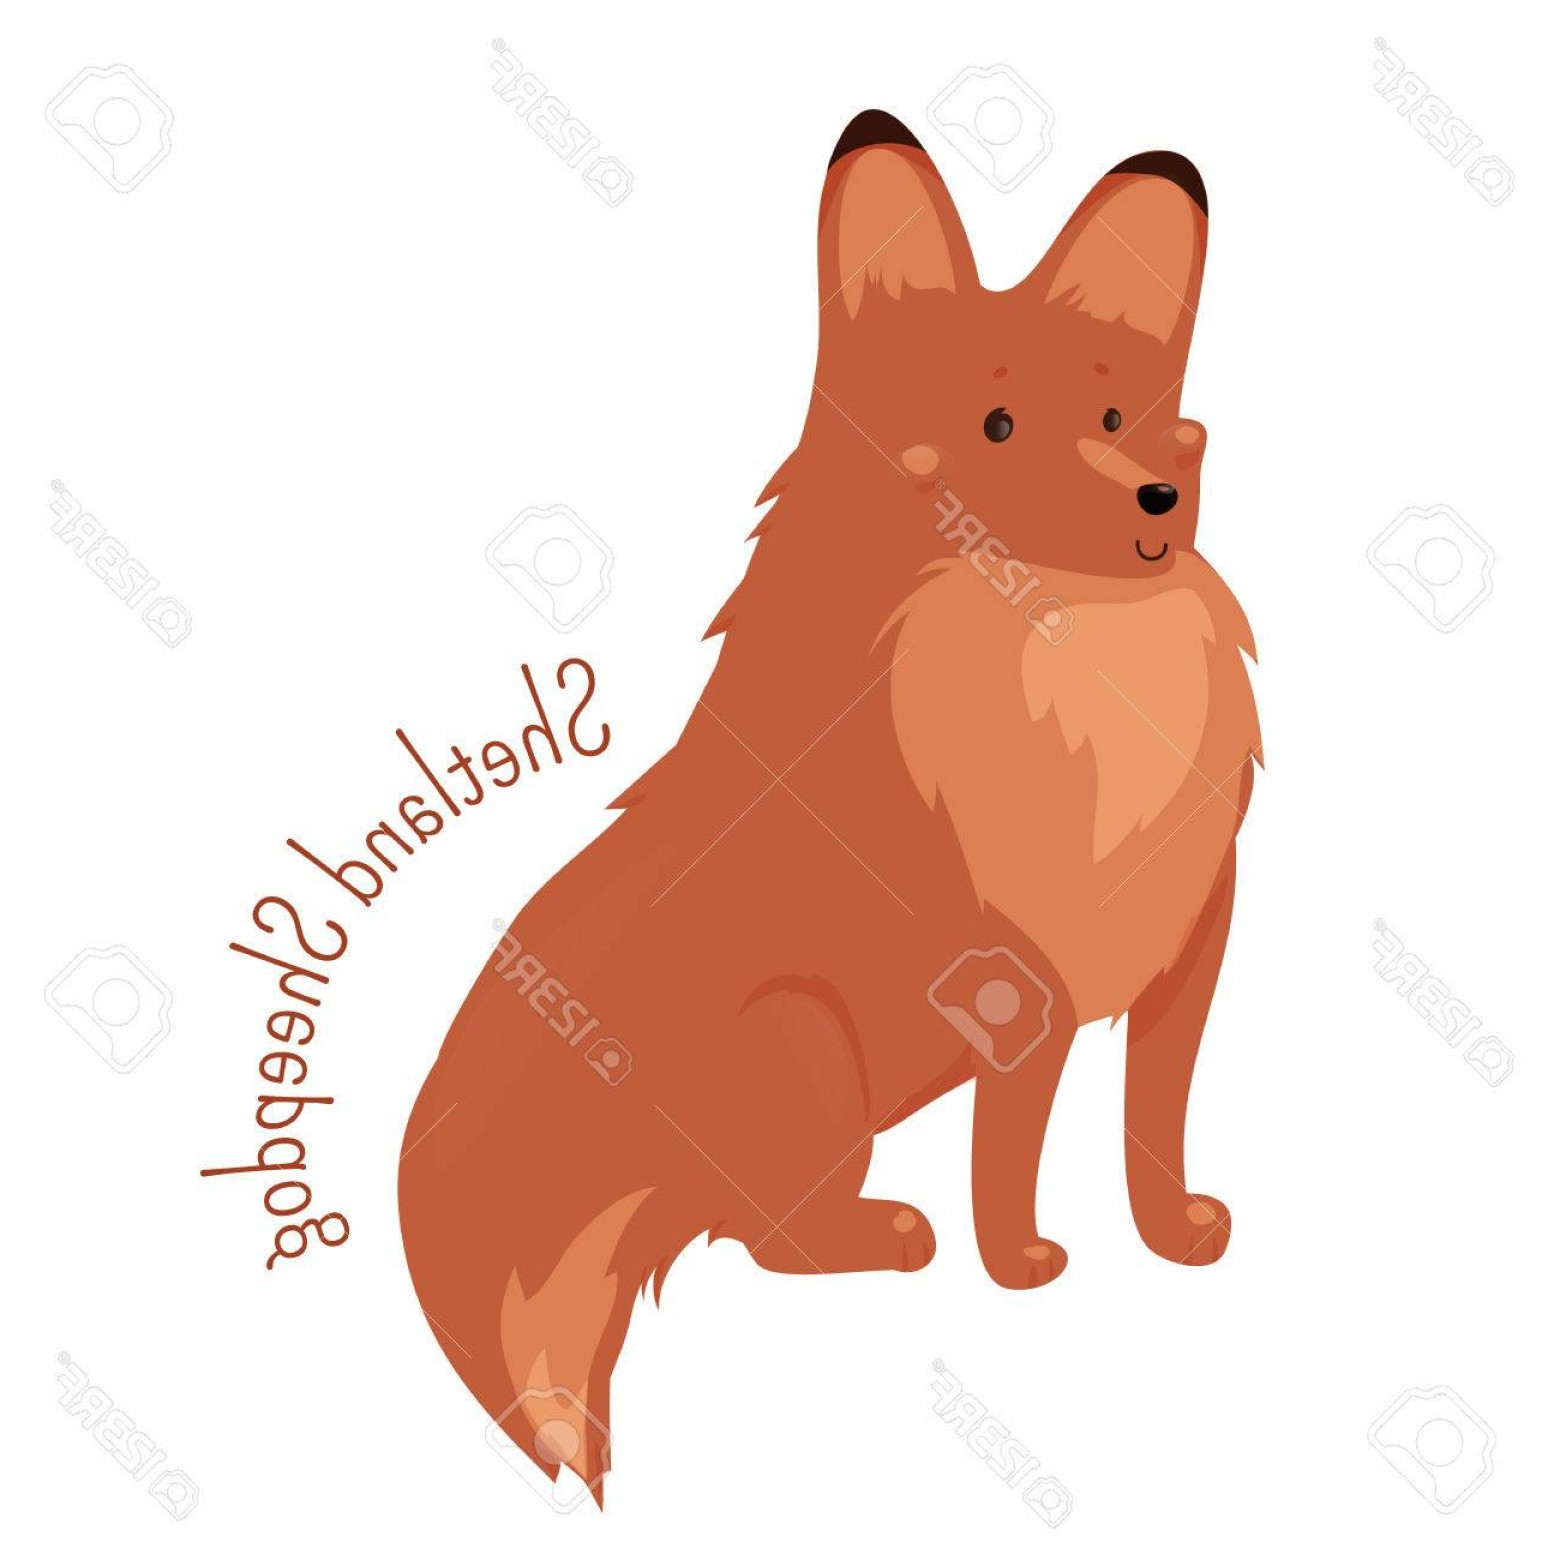 Double Boxer Dog Vector: Photostock Vector Shetland Sheepdog Isolated Sheltie Rough Collie Breed Of Herding Dog Small Double Coated Working Dog